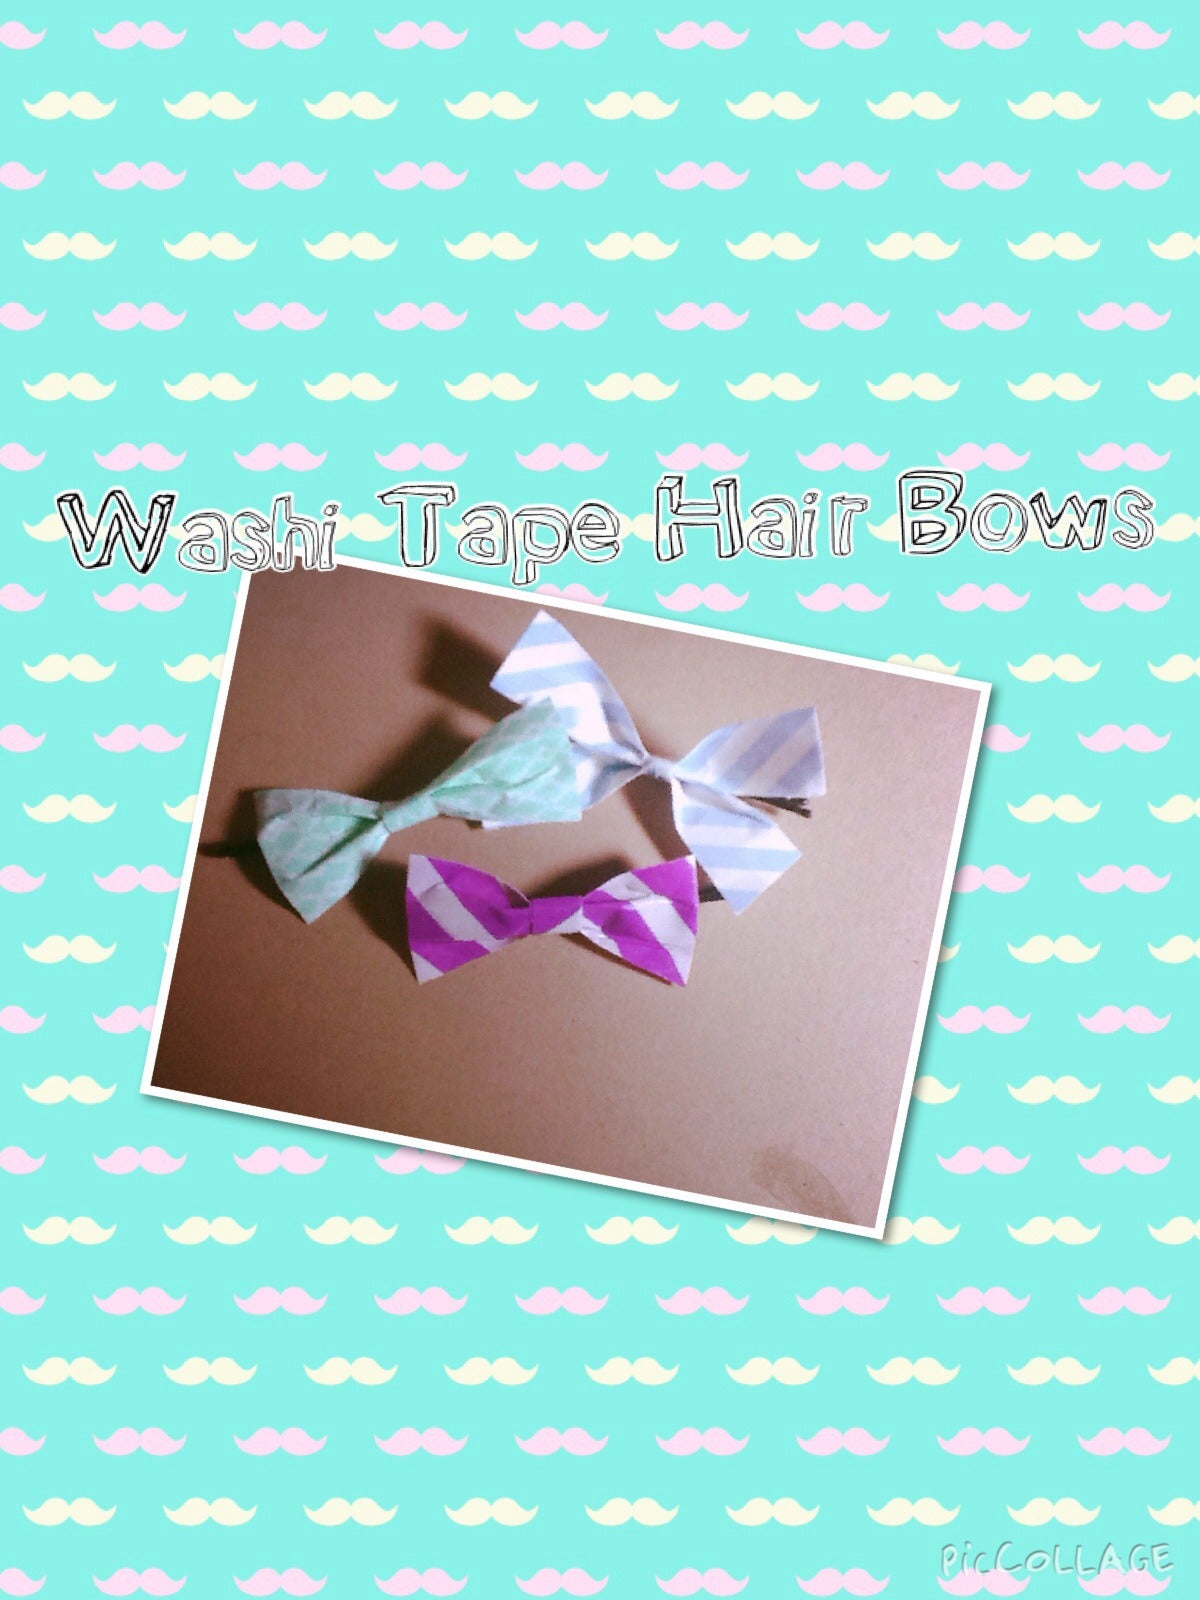 How to Make Girl Hair Bows: 14 Steps (with Pictures) - wikiHow | 1600x1200